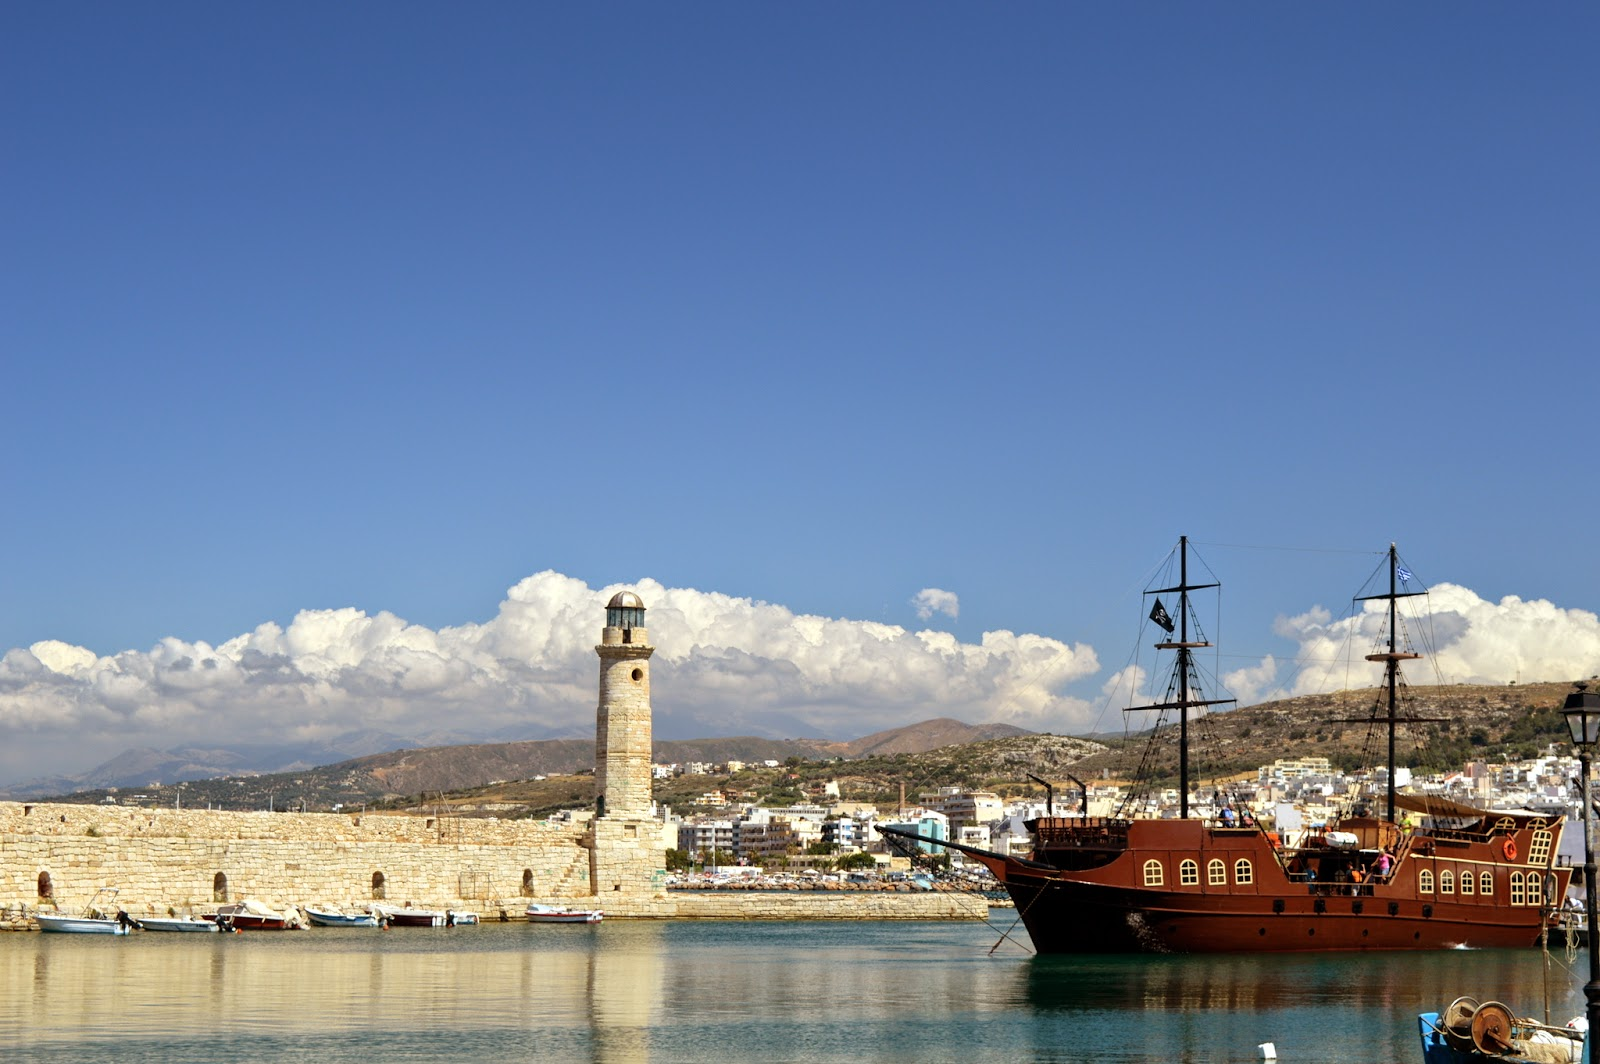 View of the old port Rethimno, Crete, Greece.